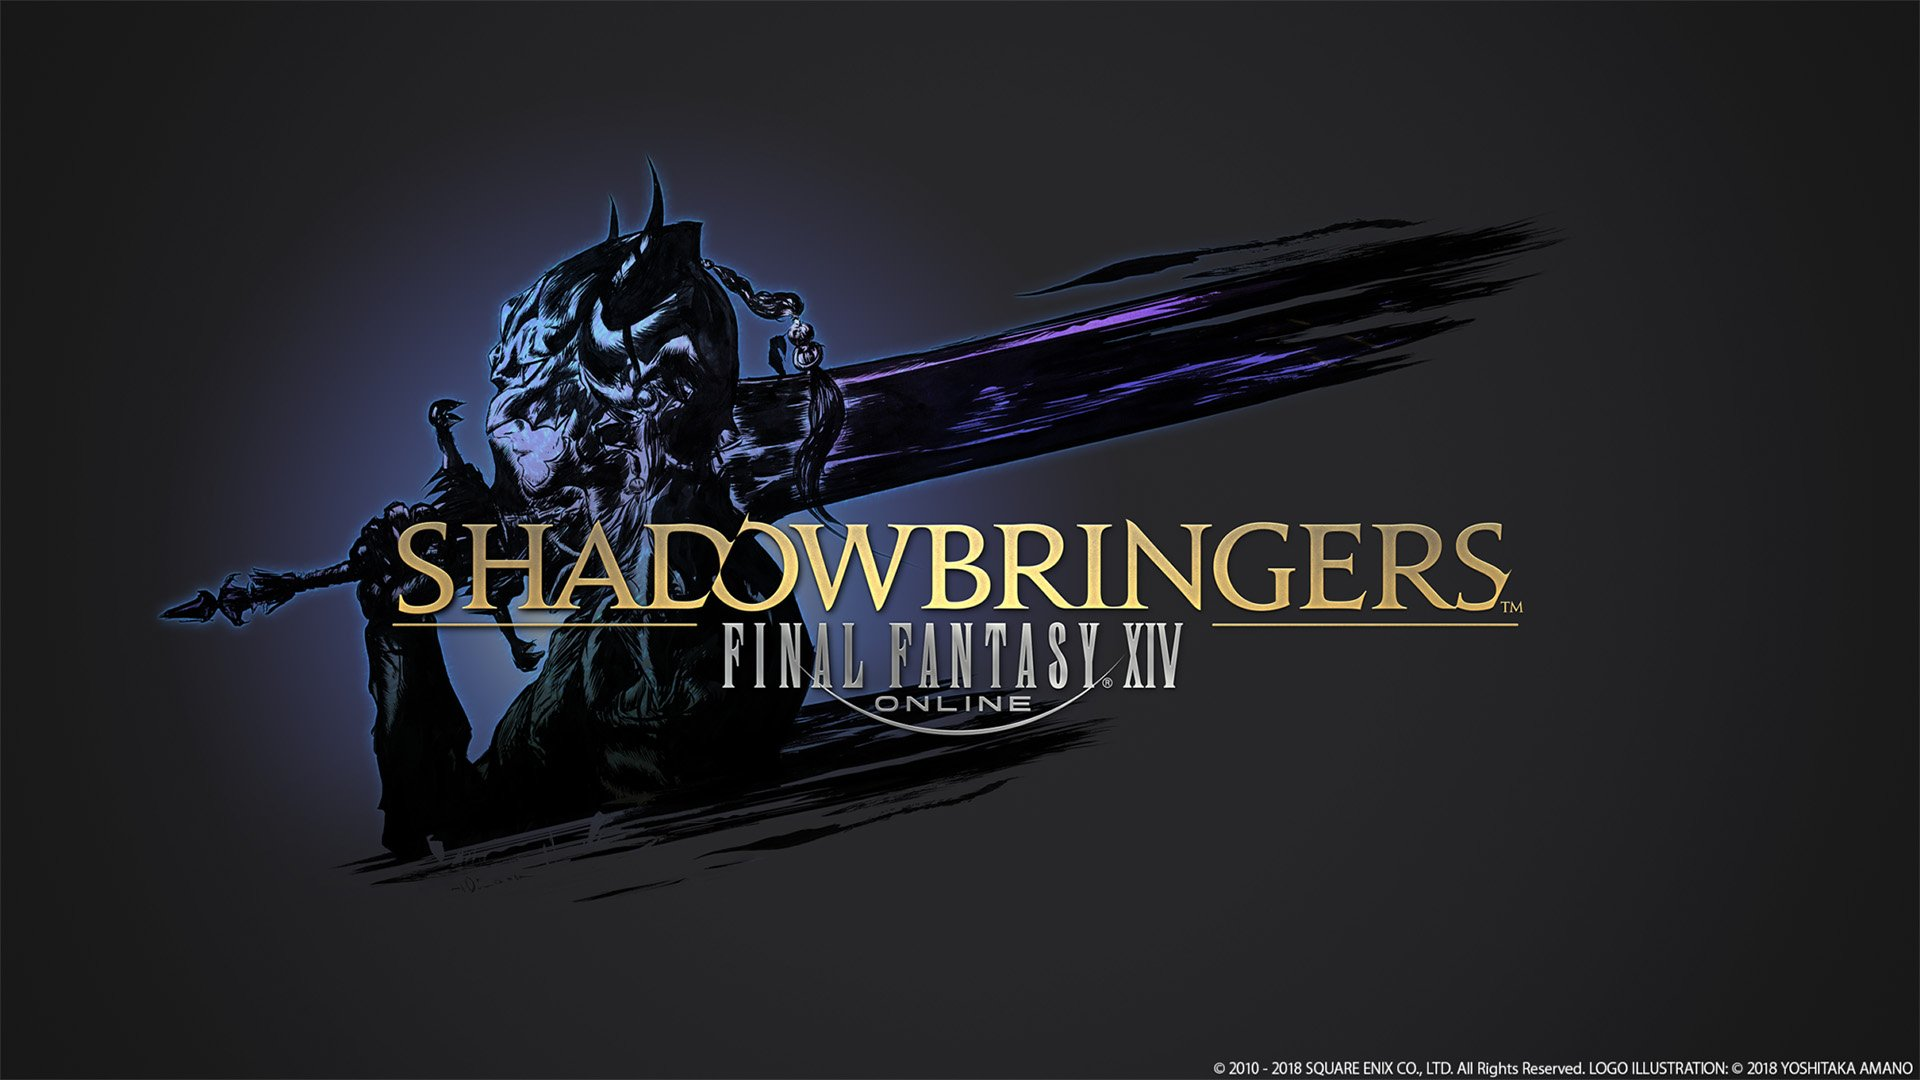 Final Fantasy 14 has amassed over 16 million players as we near Shadowbringers release